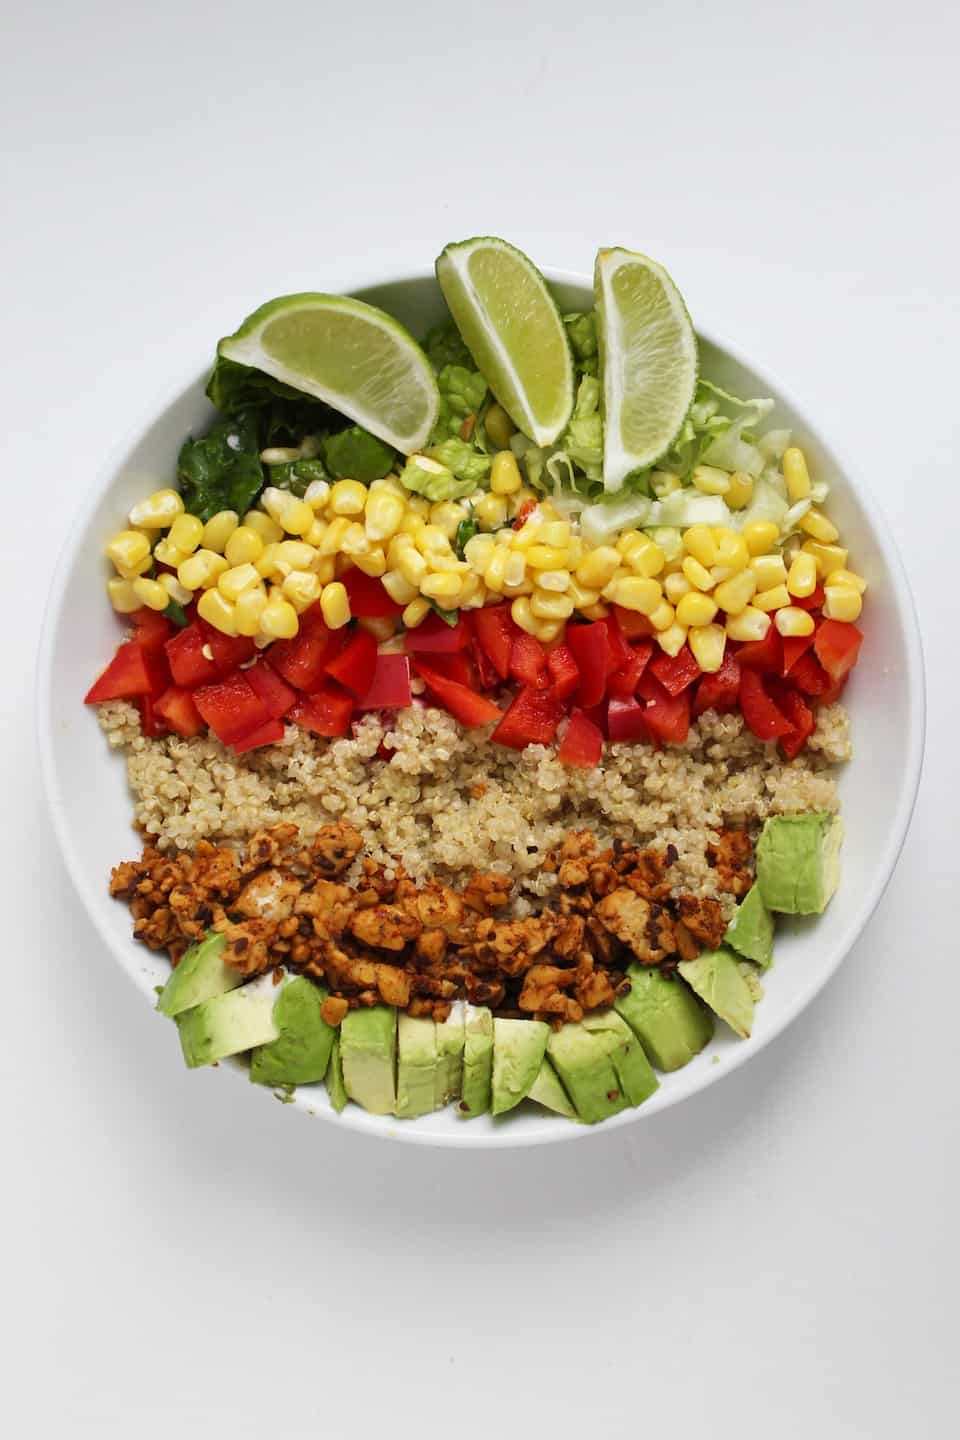 Bowl recipes. Colorful tempeh taco bowl in white bowl against white background.